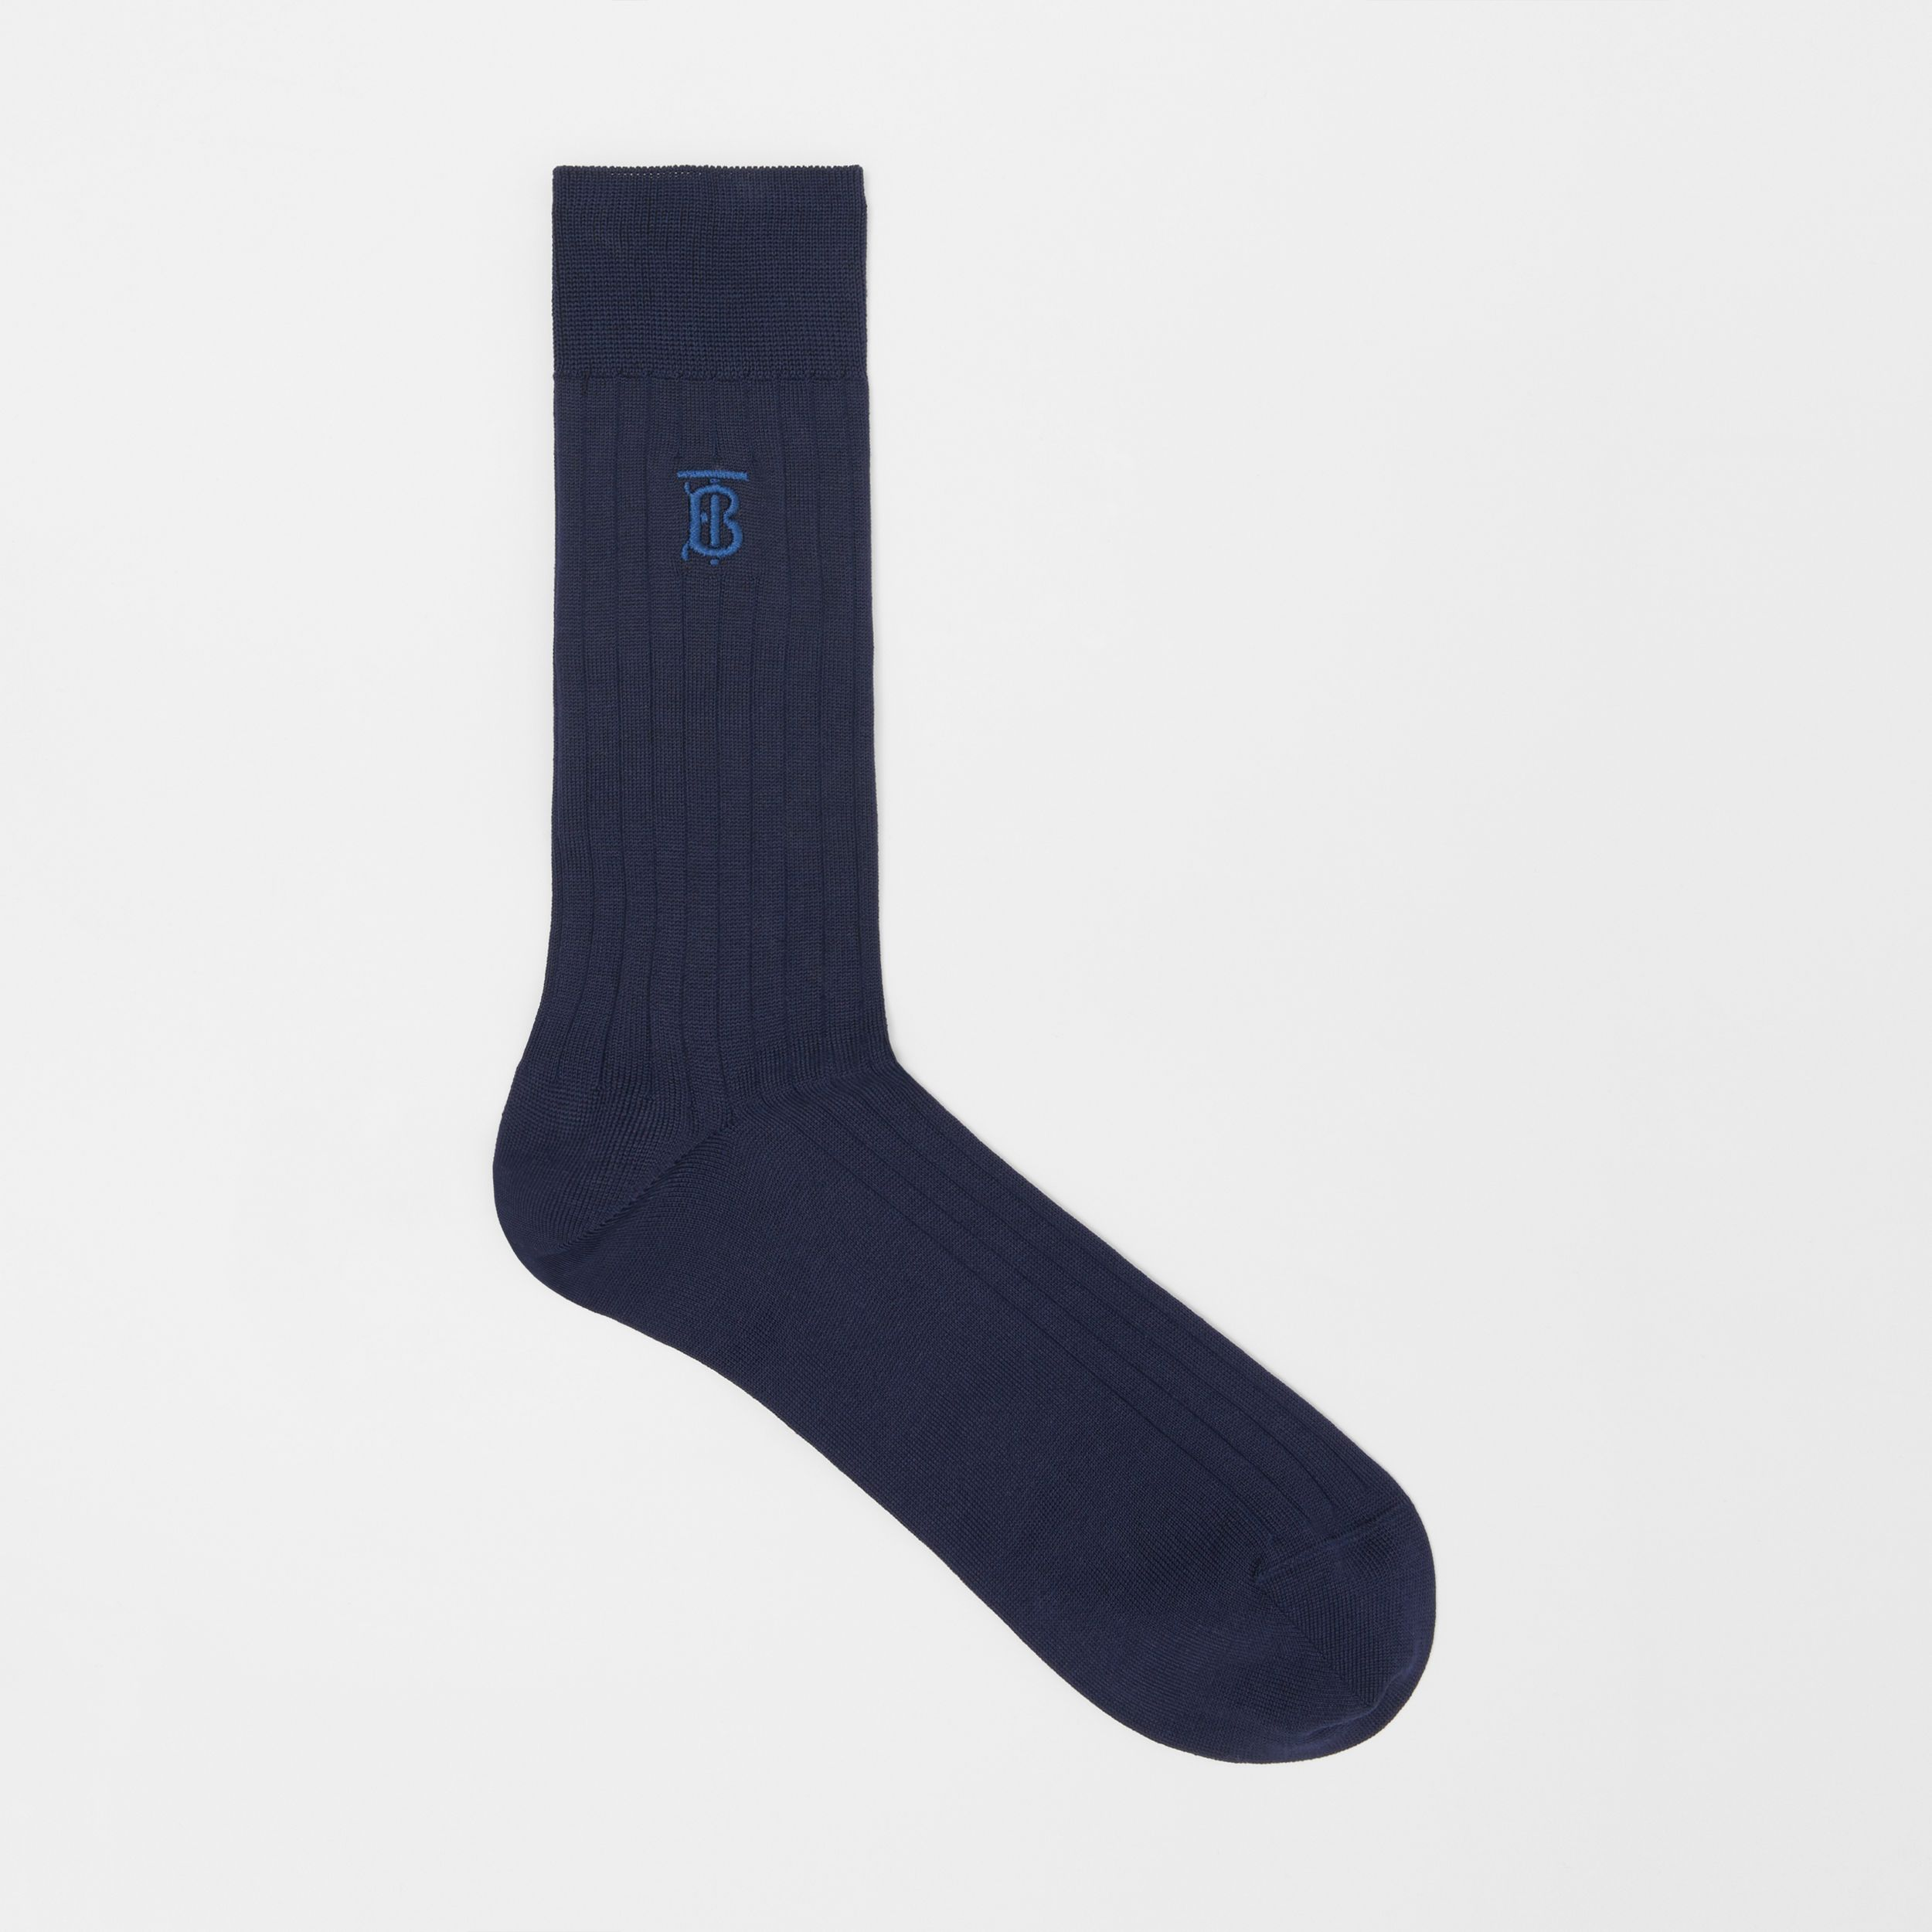 Monogram Motif Cotton Blend Socks in Navy | Burberry Australia - 1